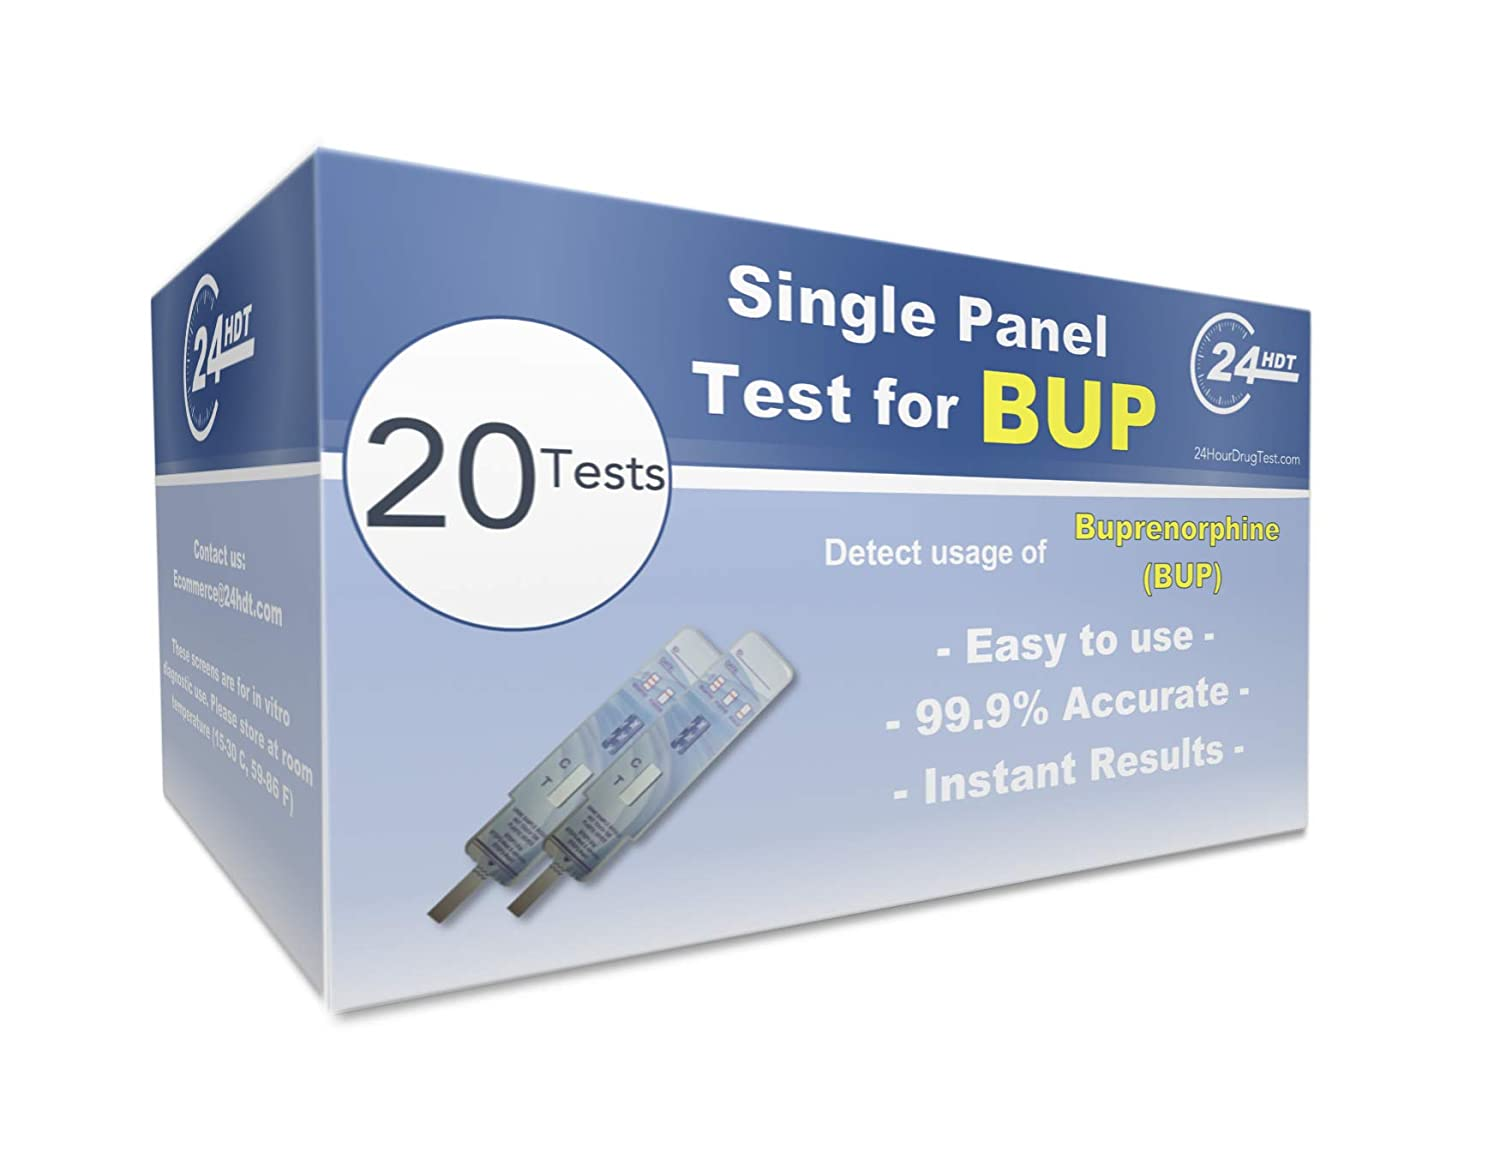 Single Panel Urine Drug Test Srip Buprenorphine (BUP) - 20 Pack